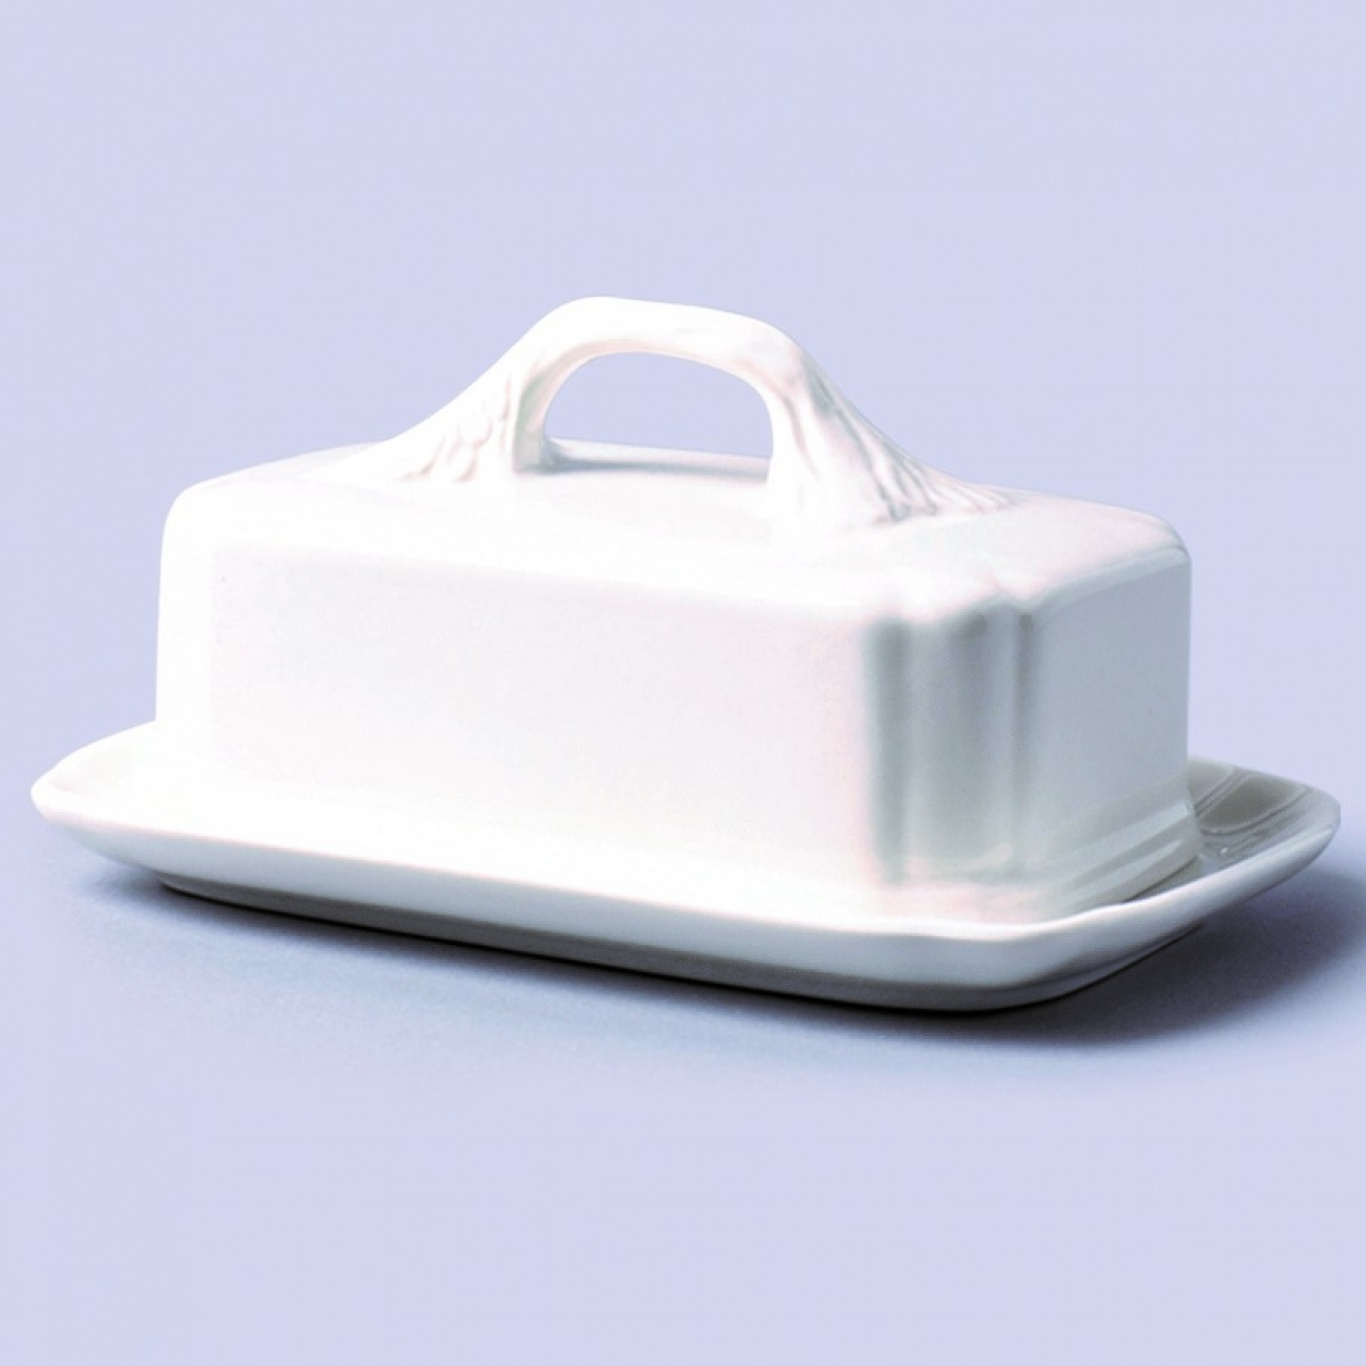 Image of Butter Plate with Lid